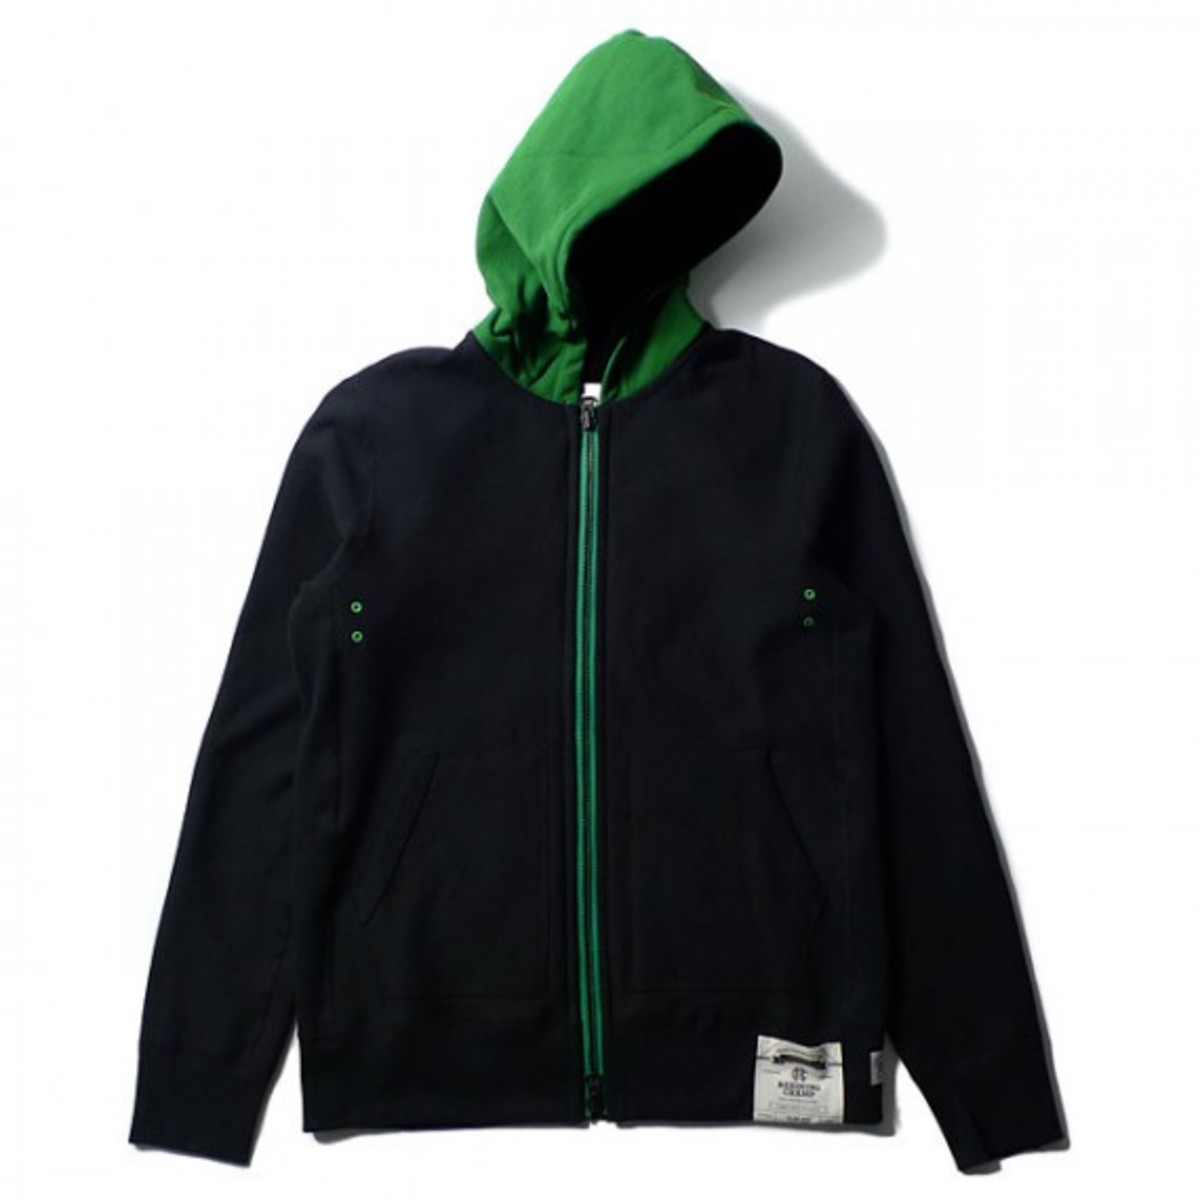 reigning-champ-fall-winter-2010-collection-delivery-4